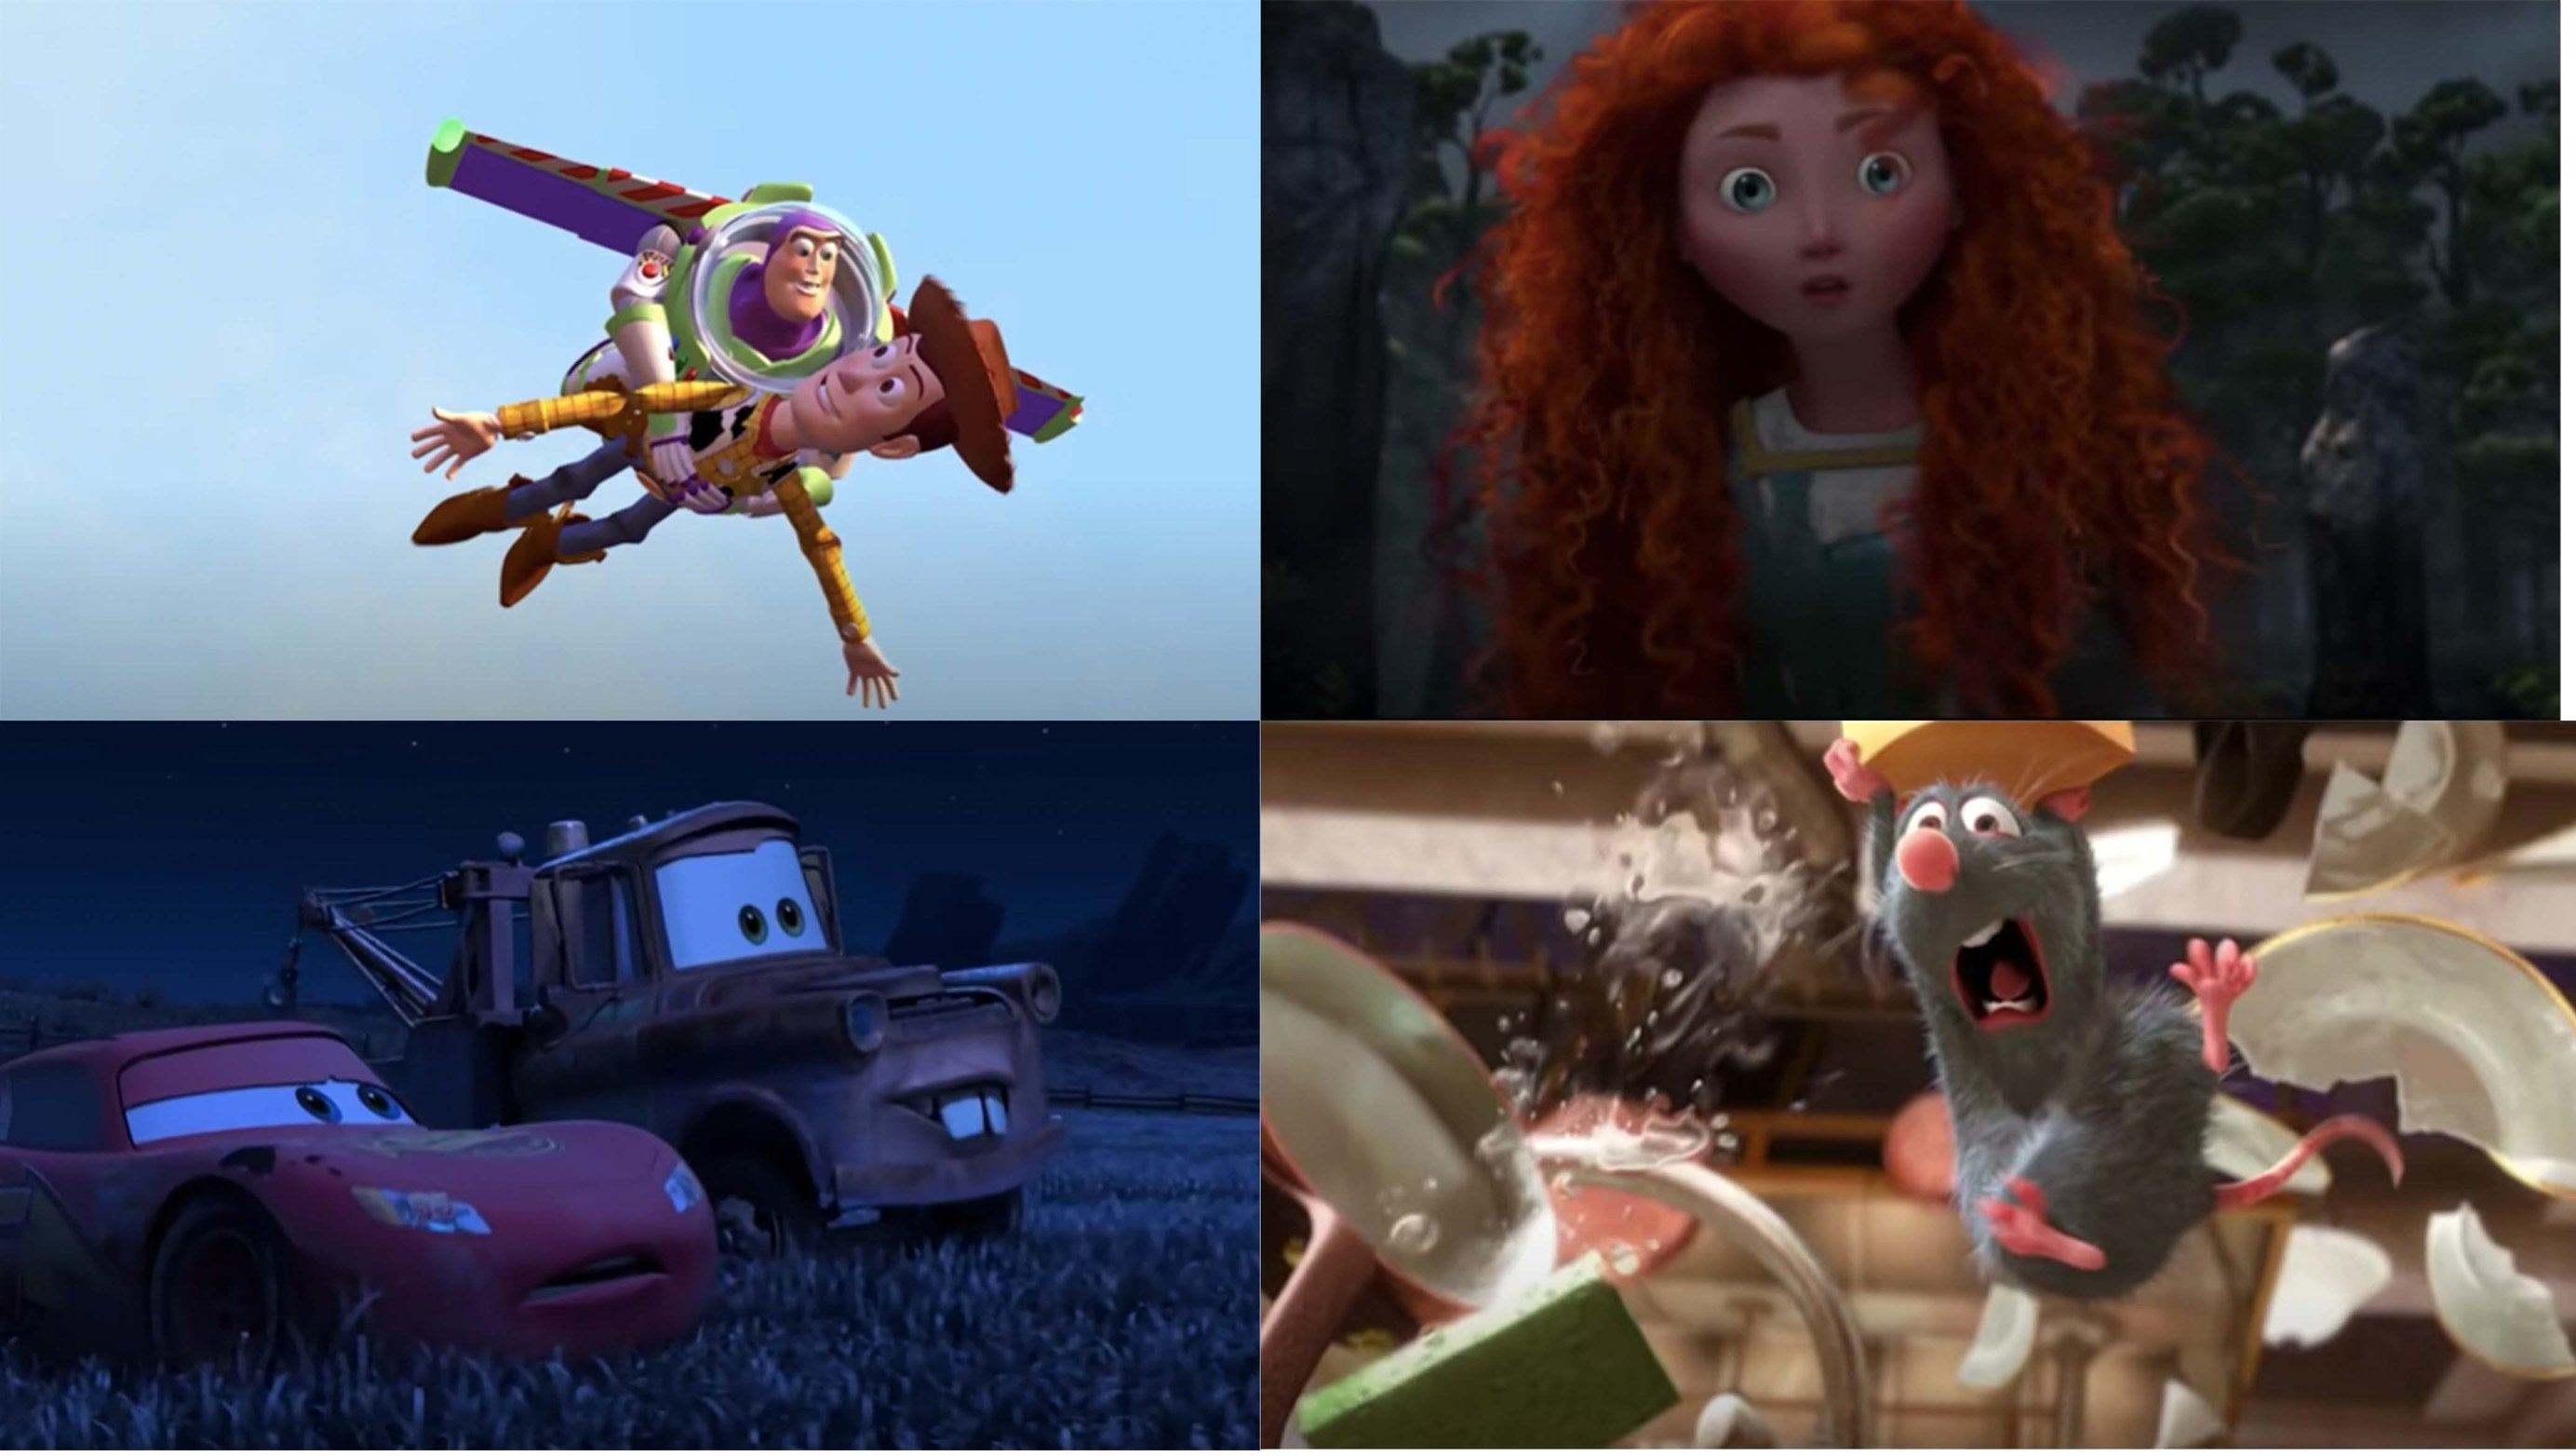 Toy Story, Brave, Cars, and Ratatouille